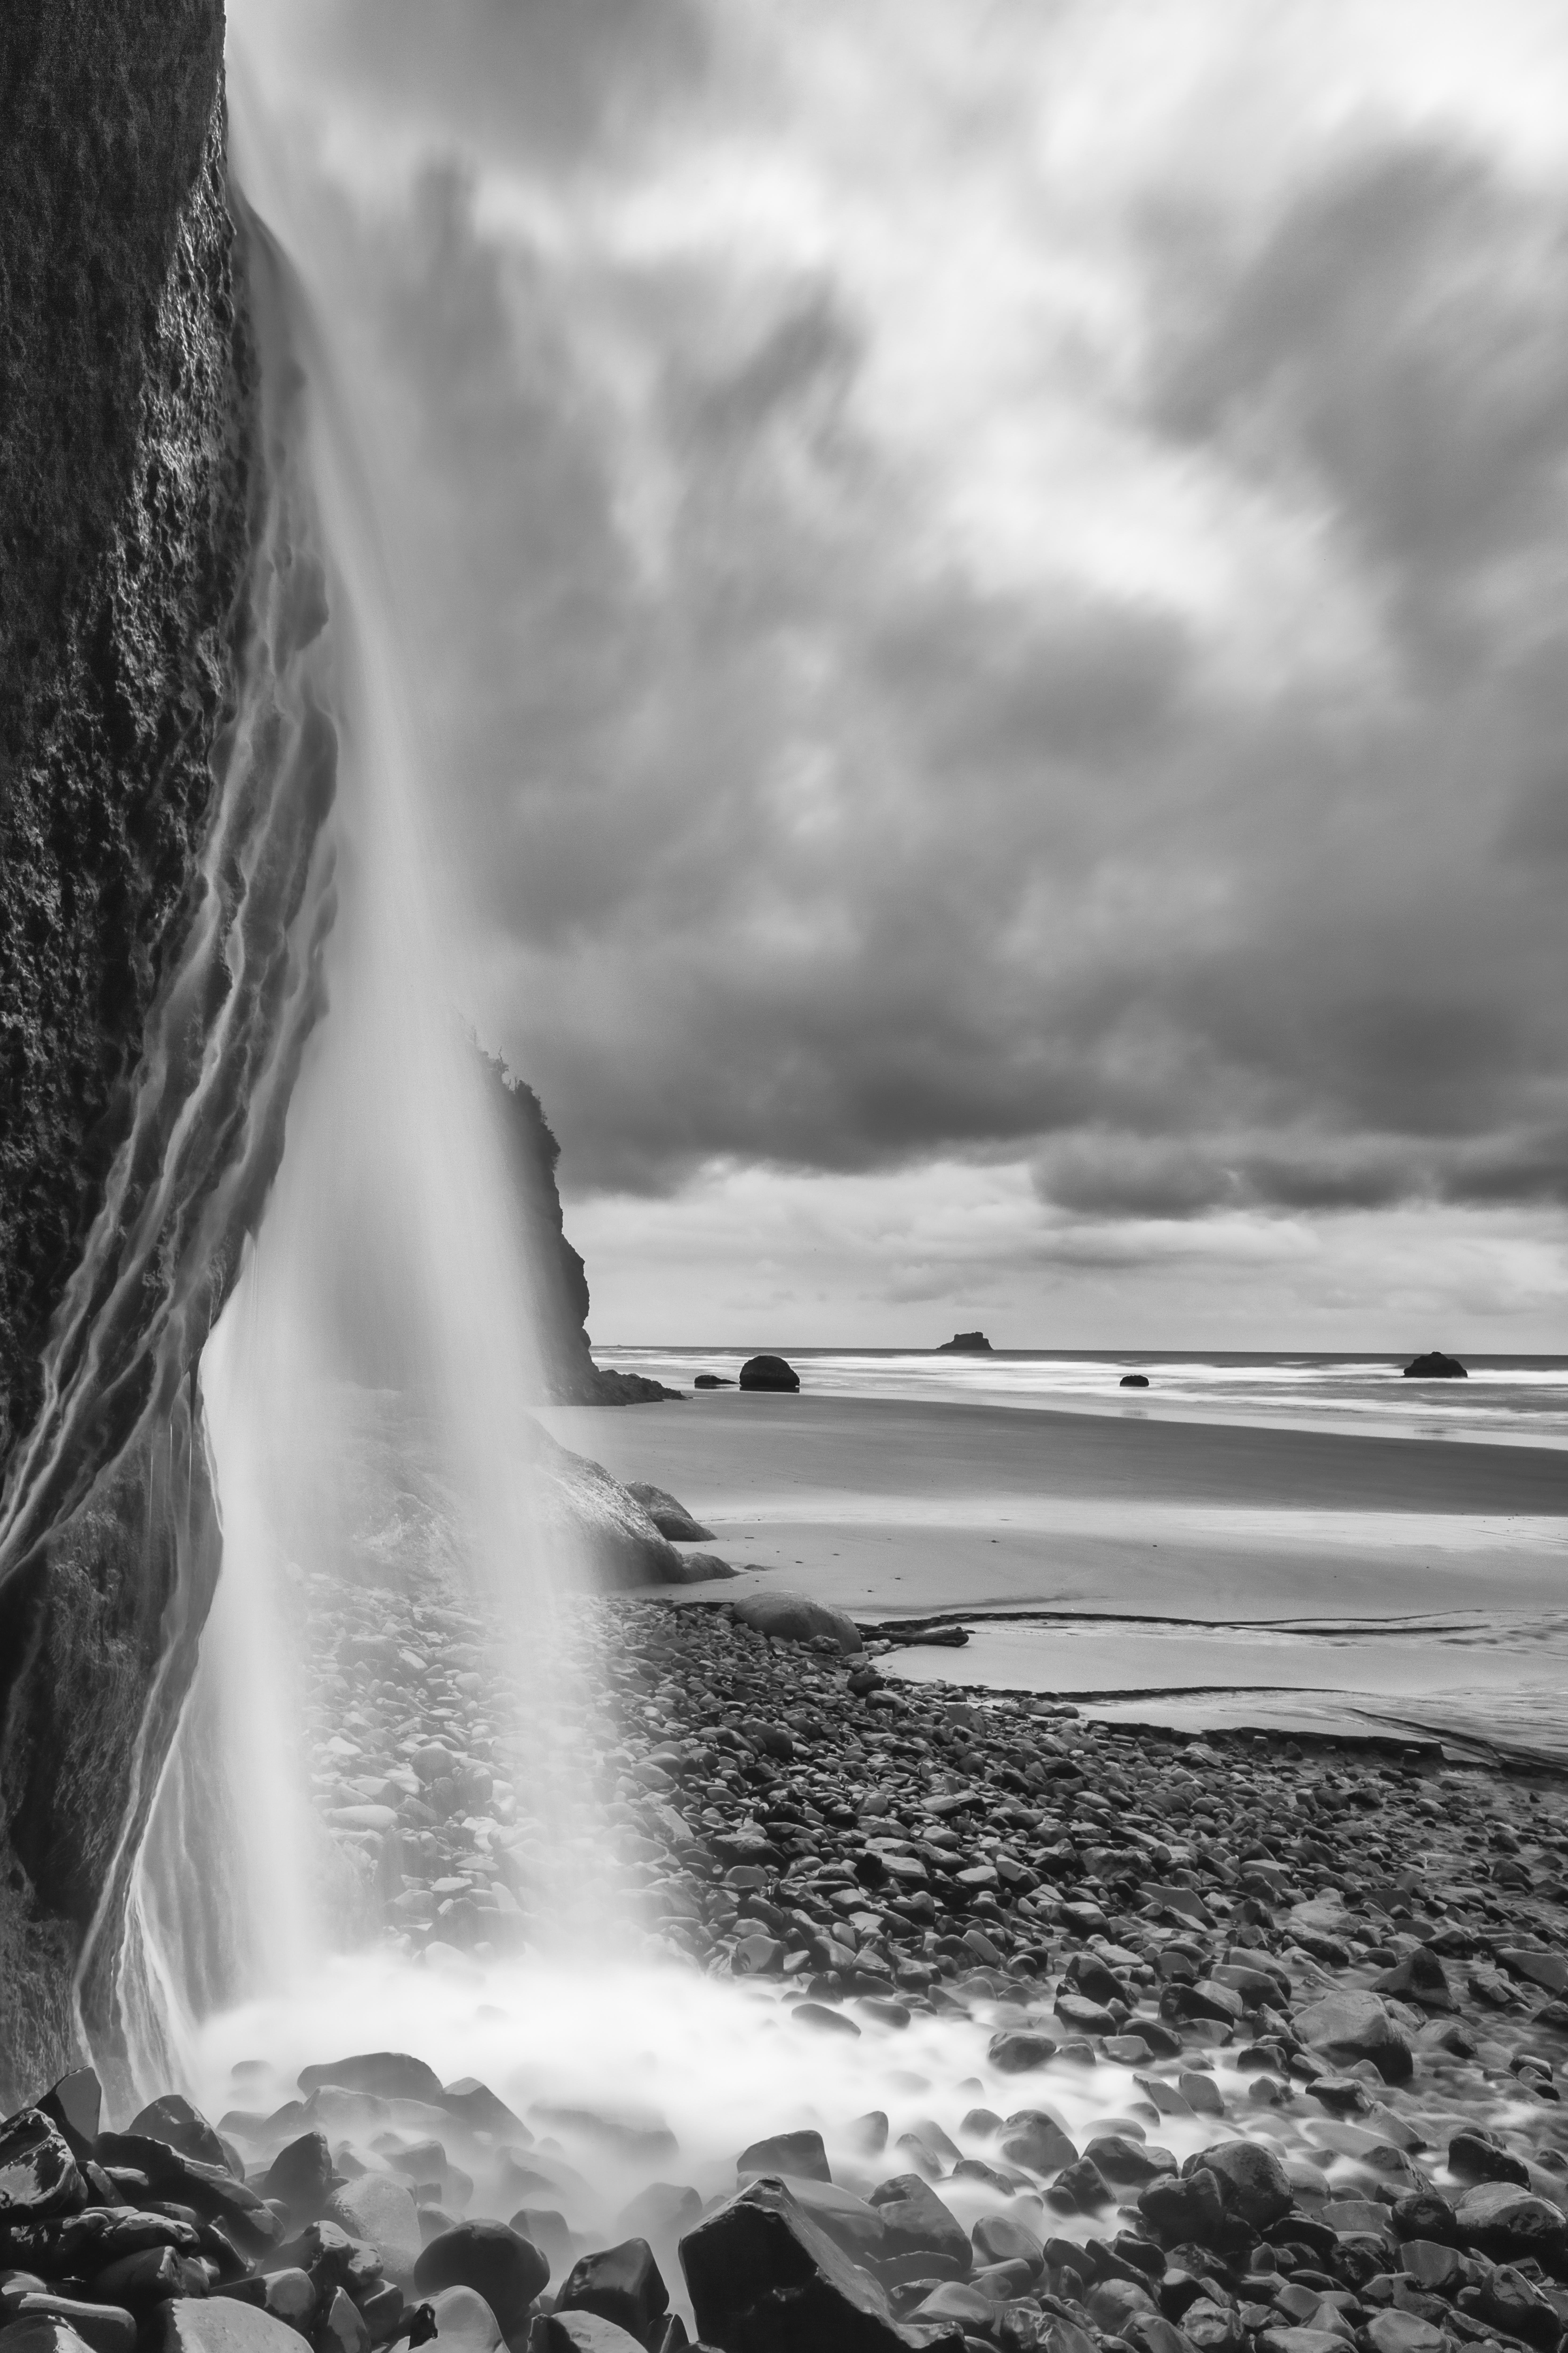 Jon Glaser Artwork Falling into the Sea, 2012 Black and White Photograph, Landscape